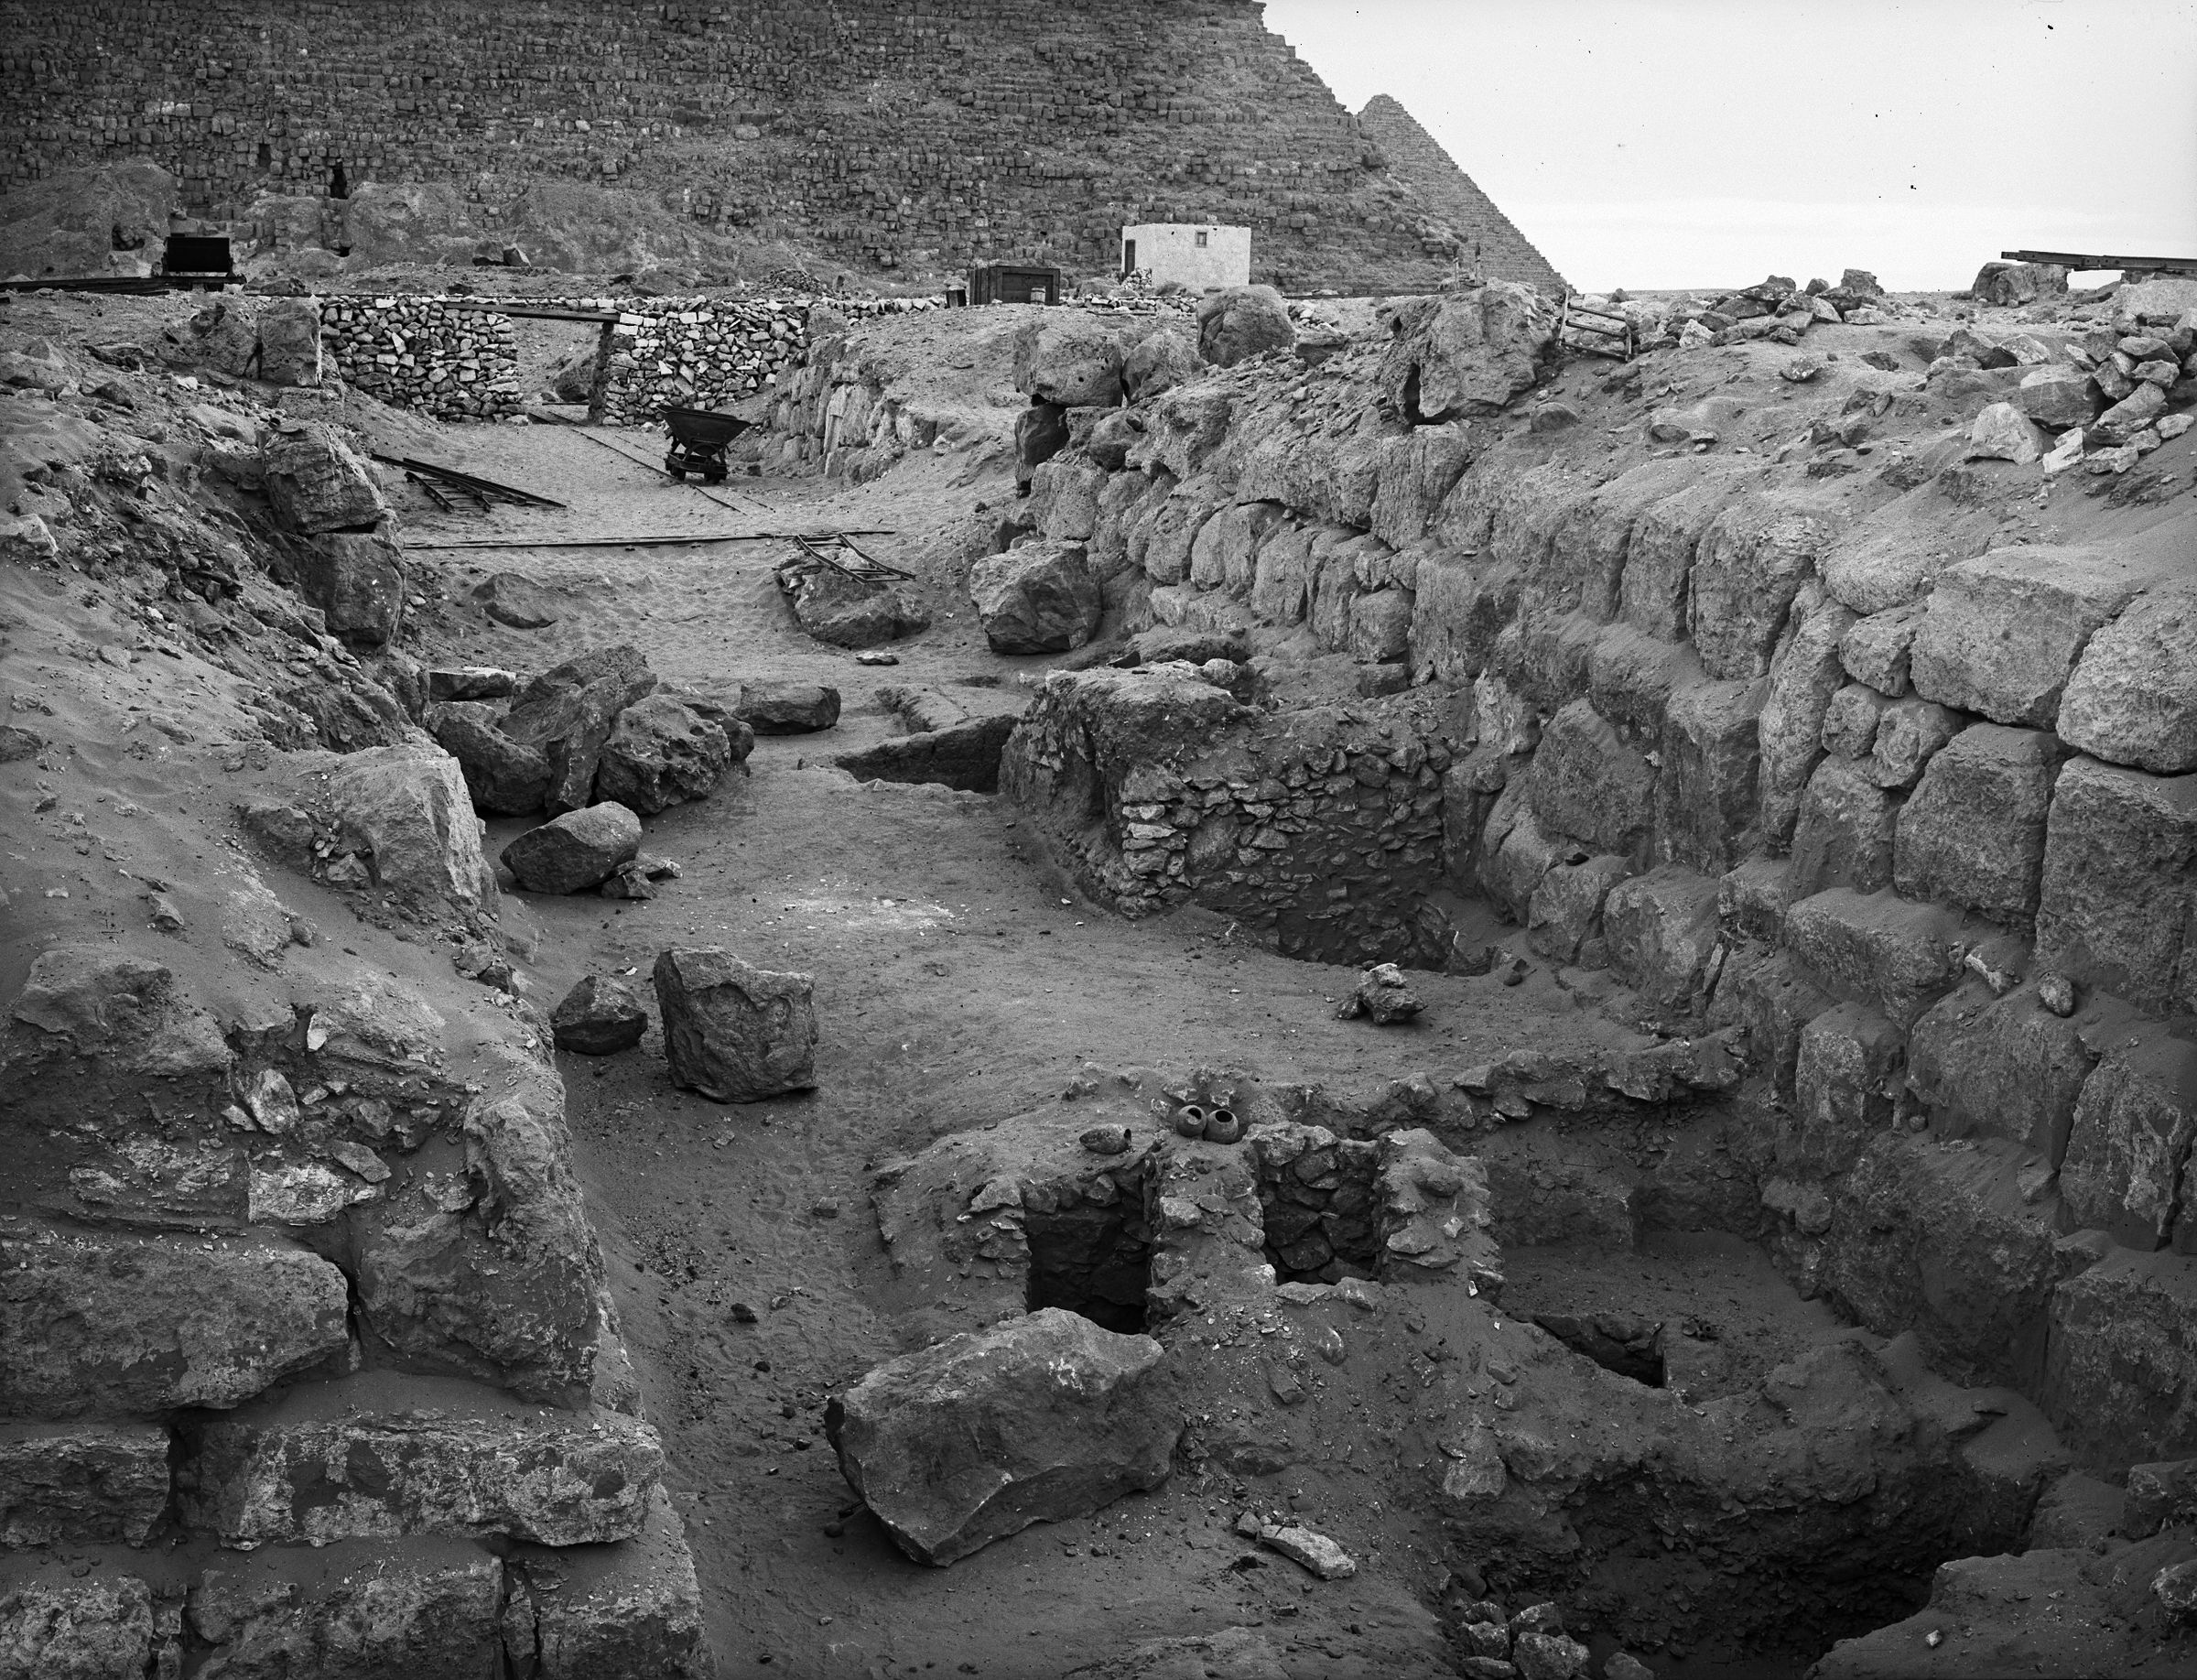 Western Cemetery: Site: Giza; View: G 4330, G 4430, G 4332, G 4331